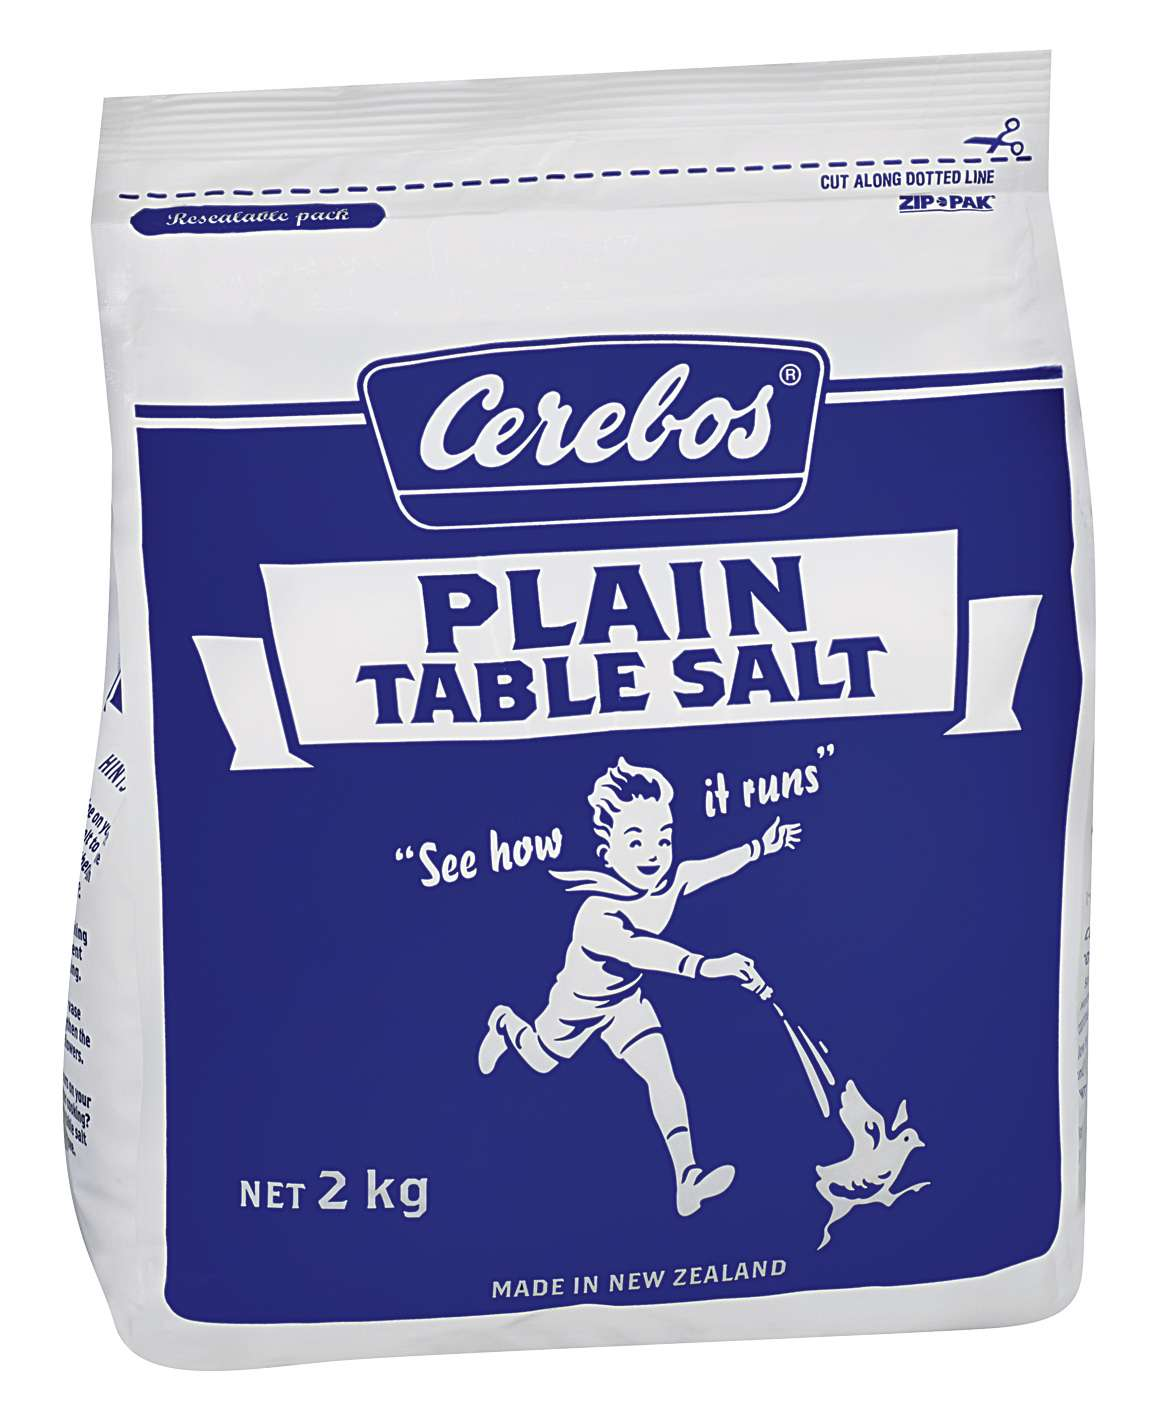 2kg Cerebos Plain Table Salt image